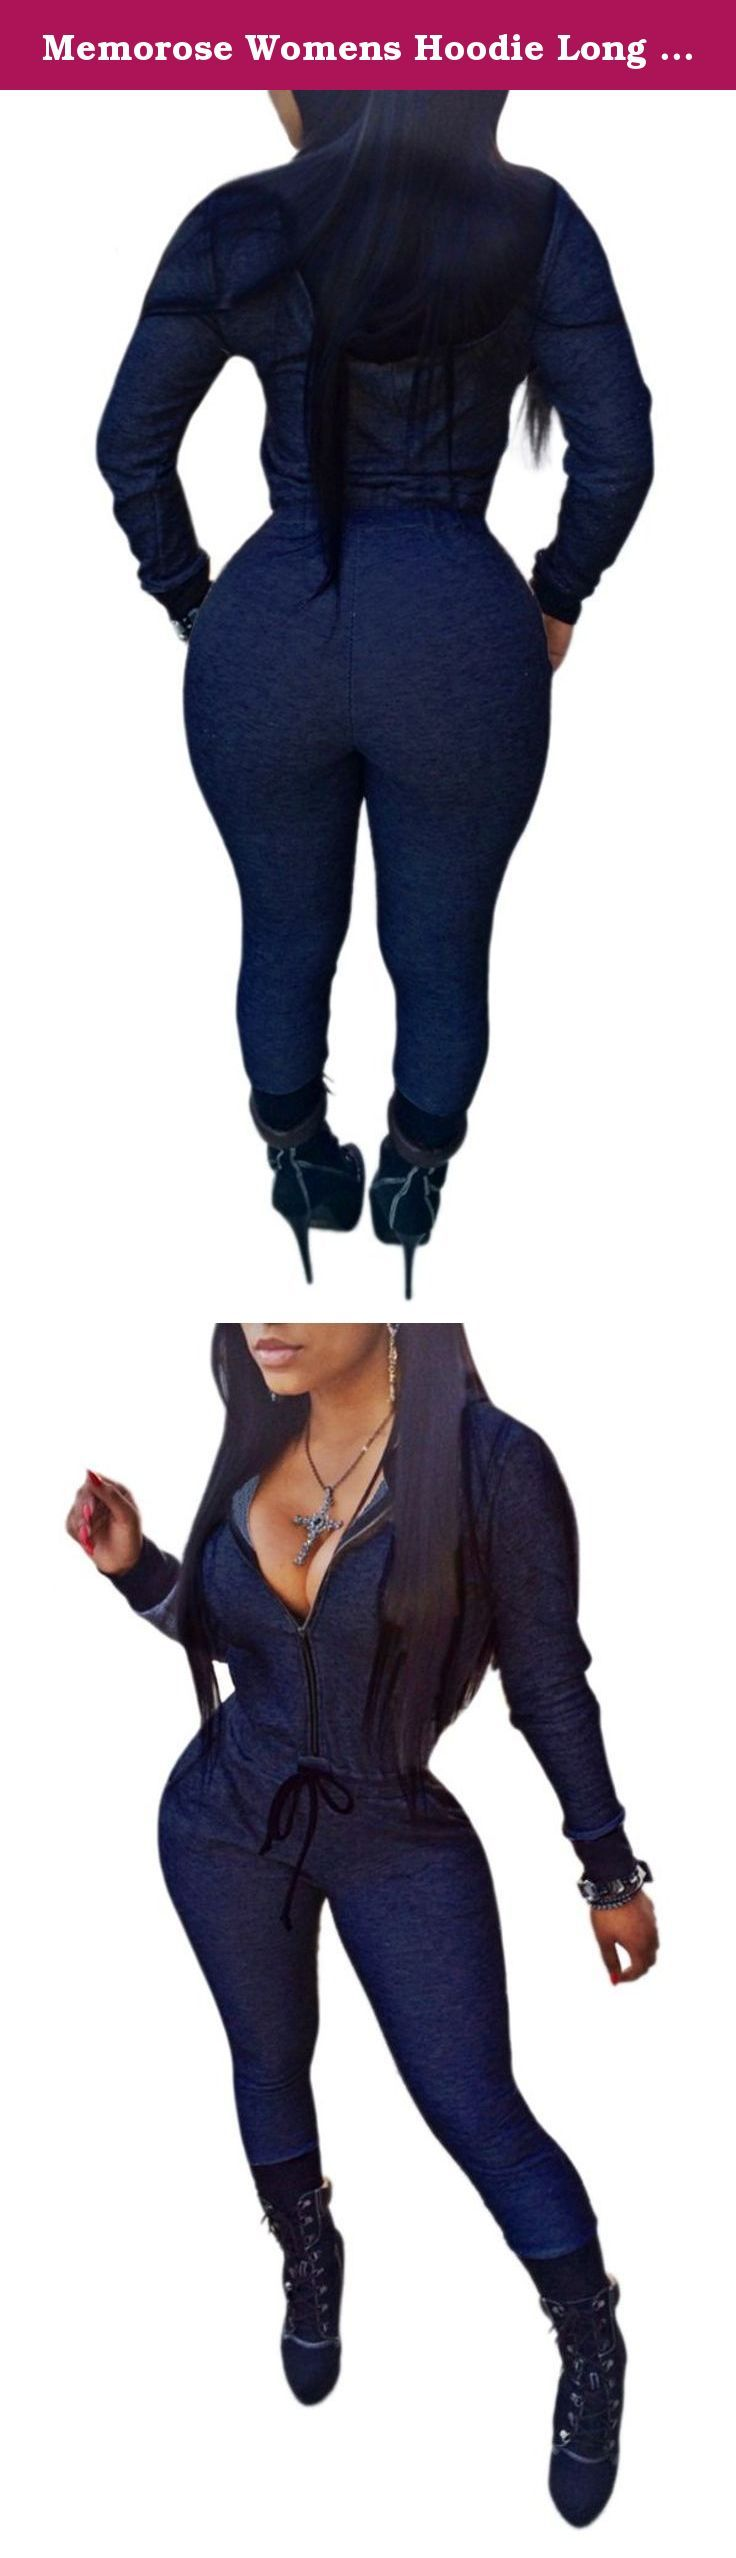 Memorose Womens Hoodie Long Sleeve Zip Up Denim Slim Jumpsuit Romper Playsuit Blue L. Basic Information: Memorose Womens Hoodie Long Sleeve Zip Up Denim Slim Jumpsuit Romper Playsuit Our size is Asia size,not US/UK size.Please Check MEASUREMENTS IN THE IMAGE Note:1 Inch=2.54 CM; 1 CM=0.39 Inch. *Due to Manual measurement there is 2-3cm difference exist Note: Due to the difference between different monitors, the picture may not reflect the actual color of the item. We guarantee the style…